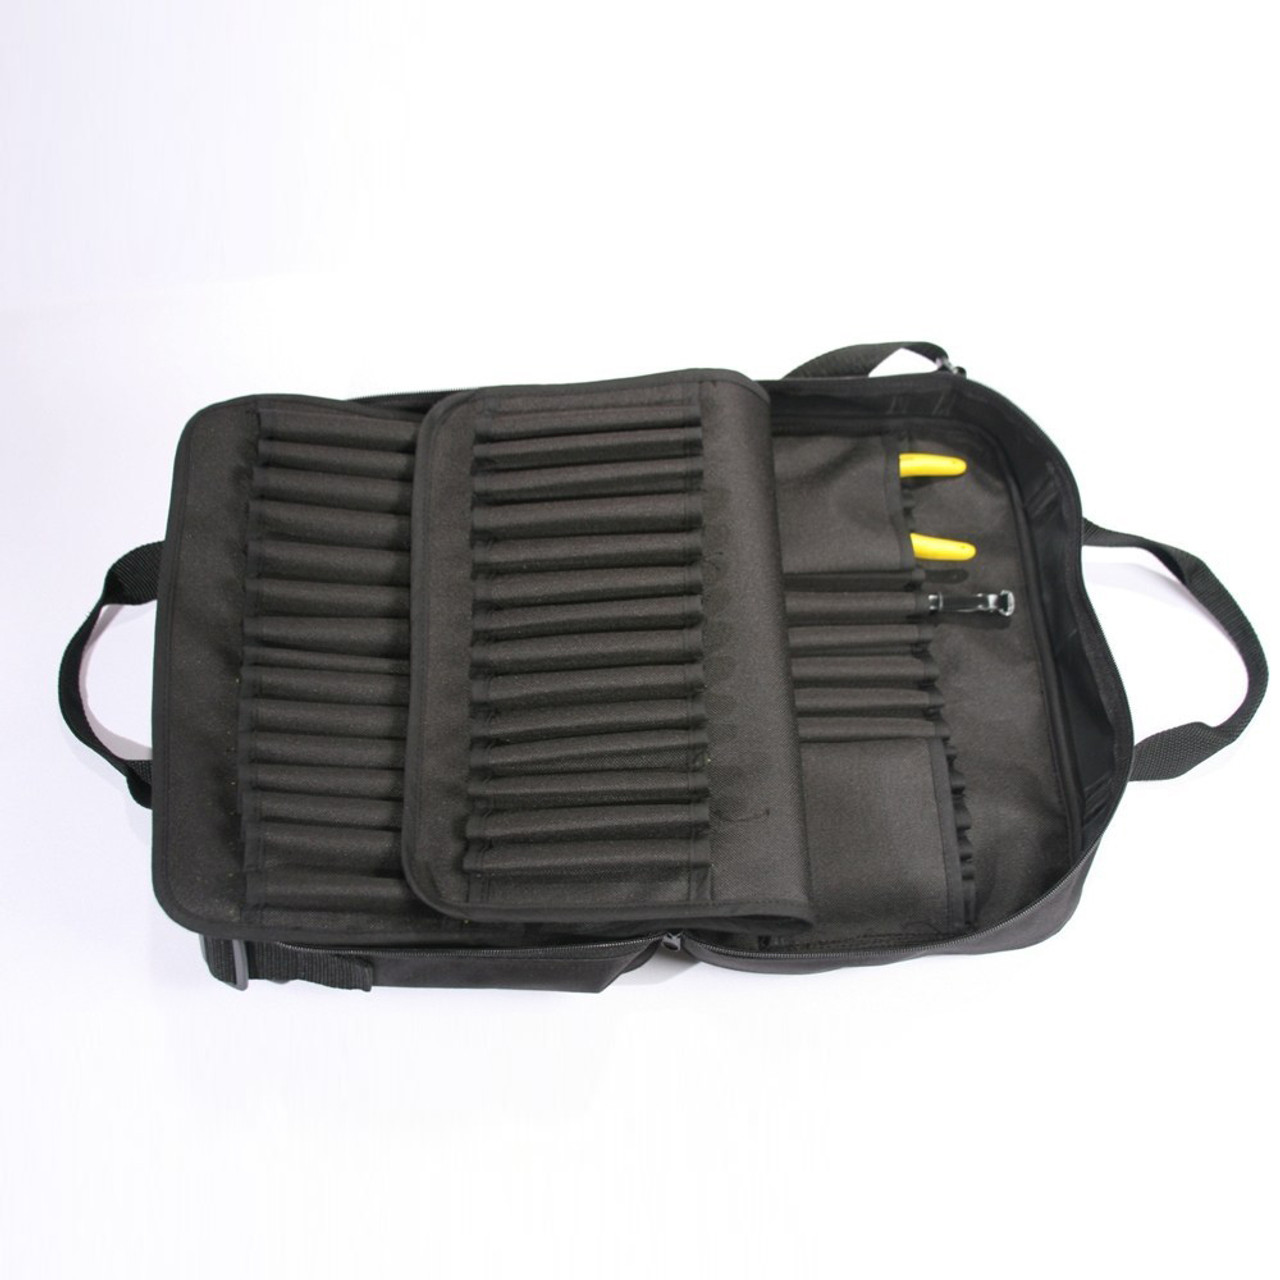 Jersey Tactical JC 5009-EP Evac Pac, can hold 96 Jersey Cuffs and 4 Safety Cutters, Black